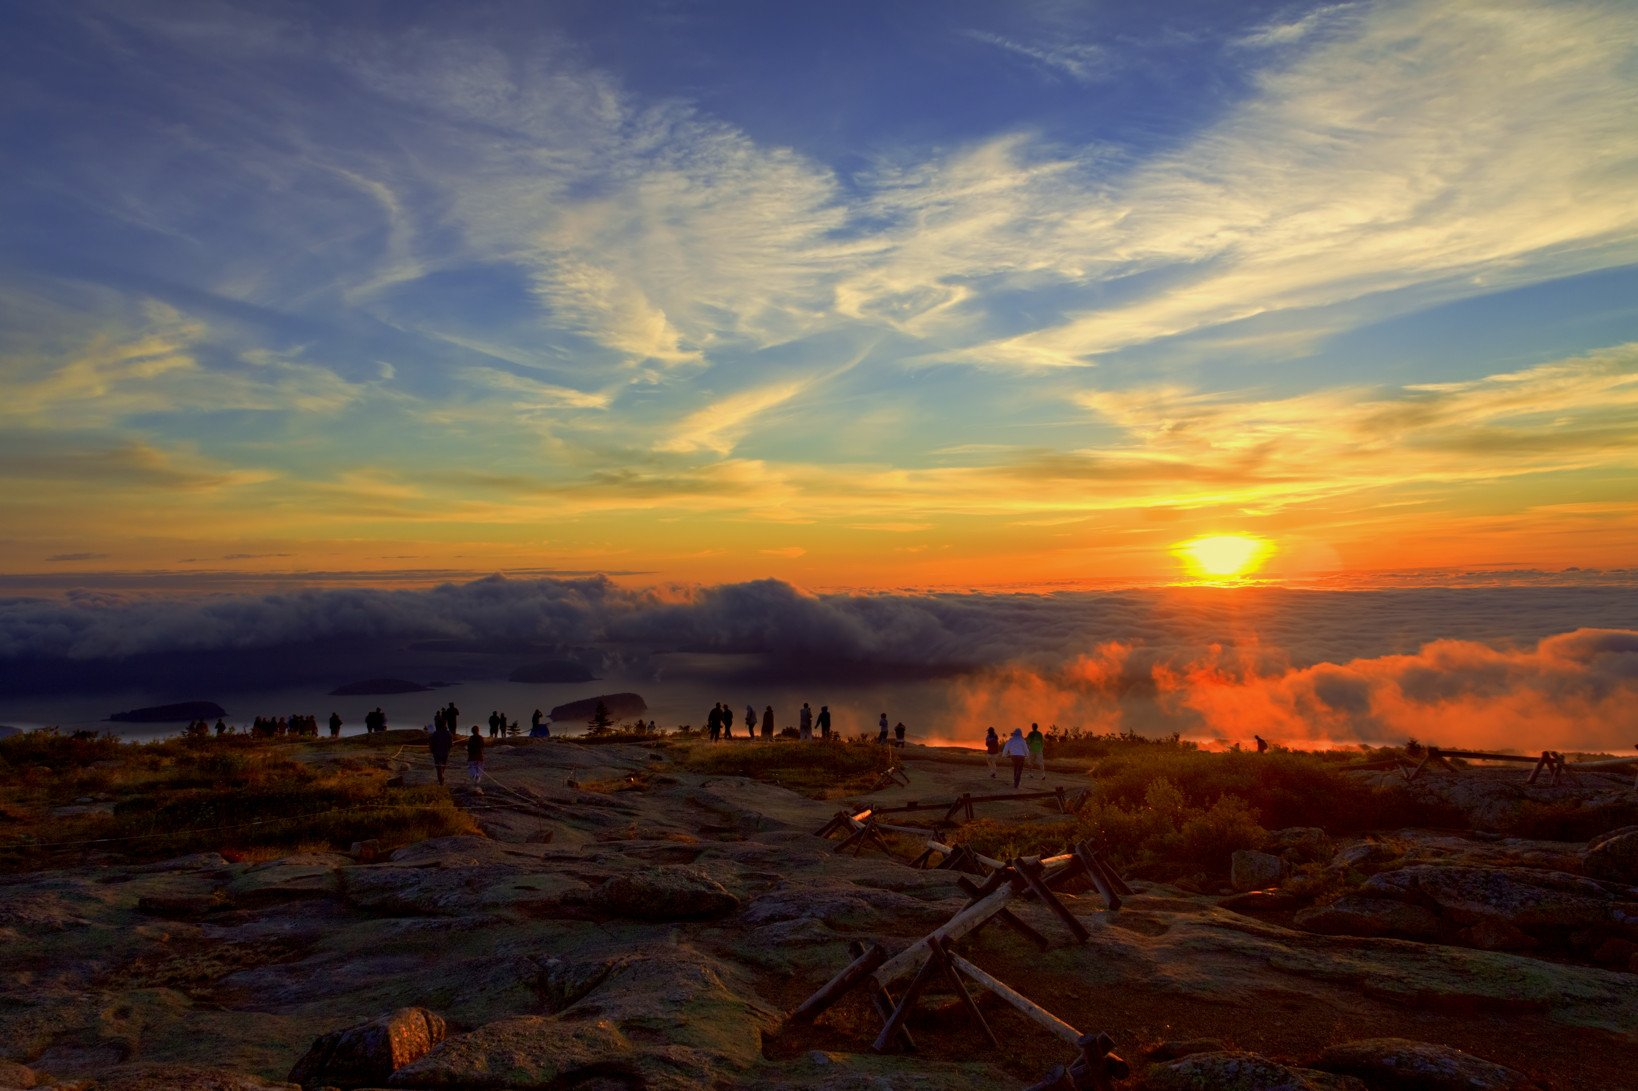 4k Hdr Wallpaper Iphone X Cadillac Mountain Sunrise Wallpaper And Background Image